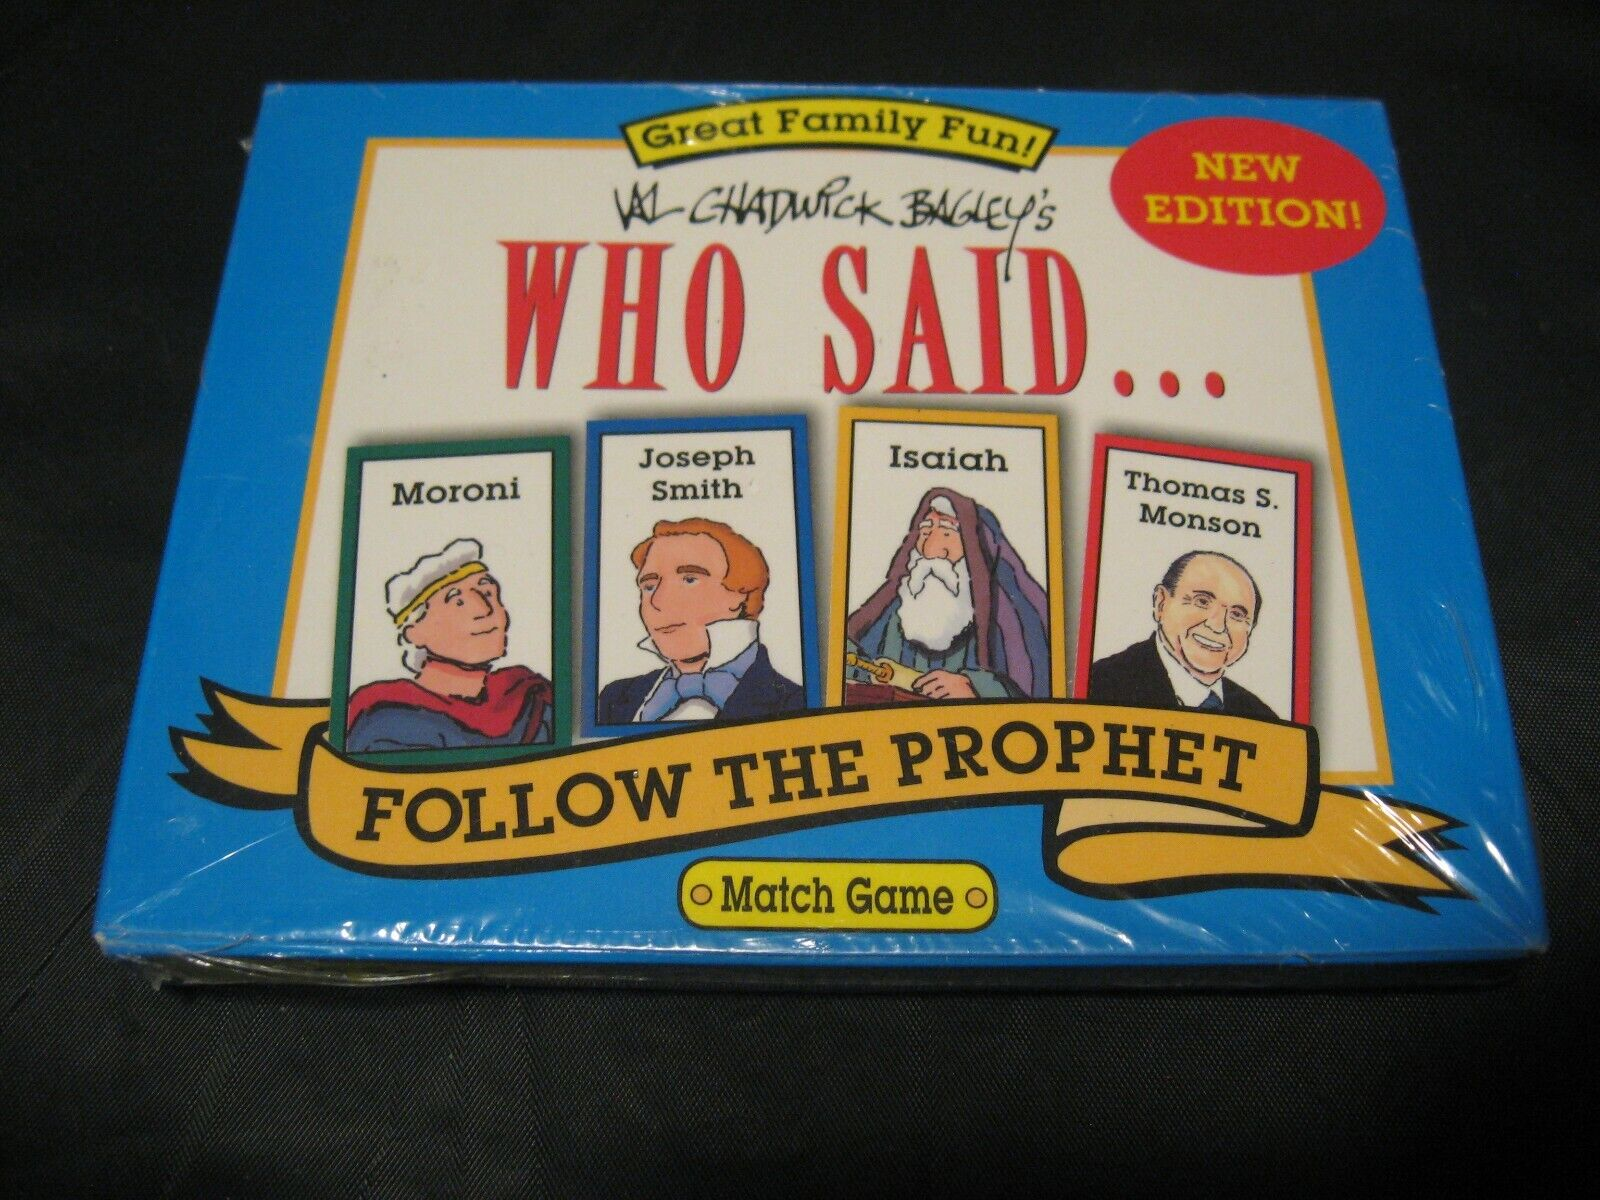 LDS Mormon Val Chadwick Bagley s WHO SAID Follow The Prophet Card Match Game - $9.99